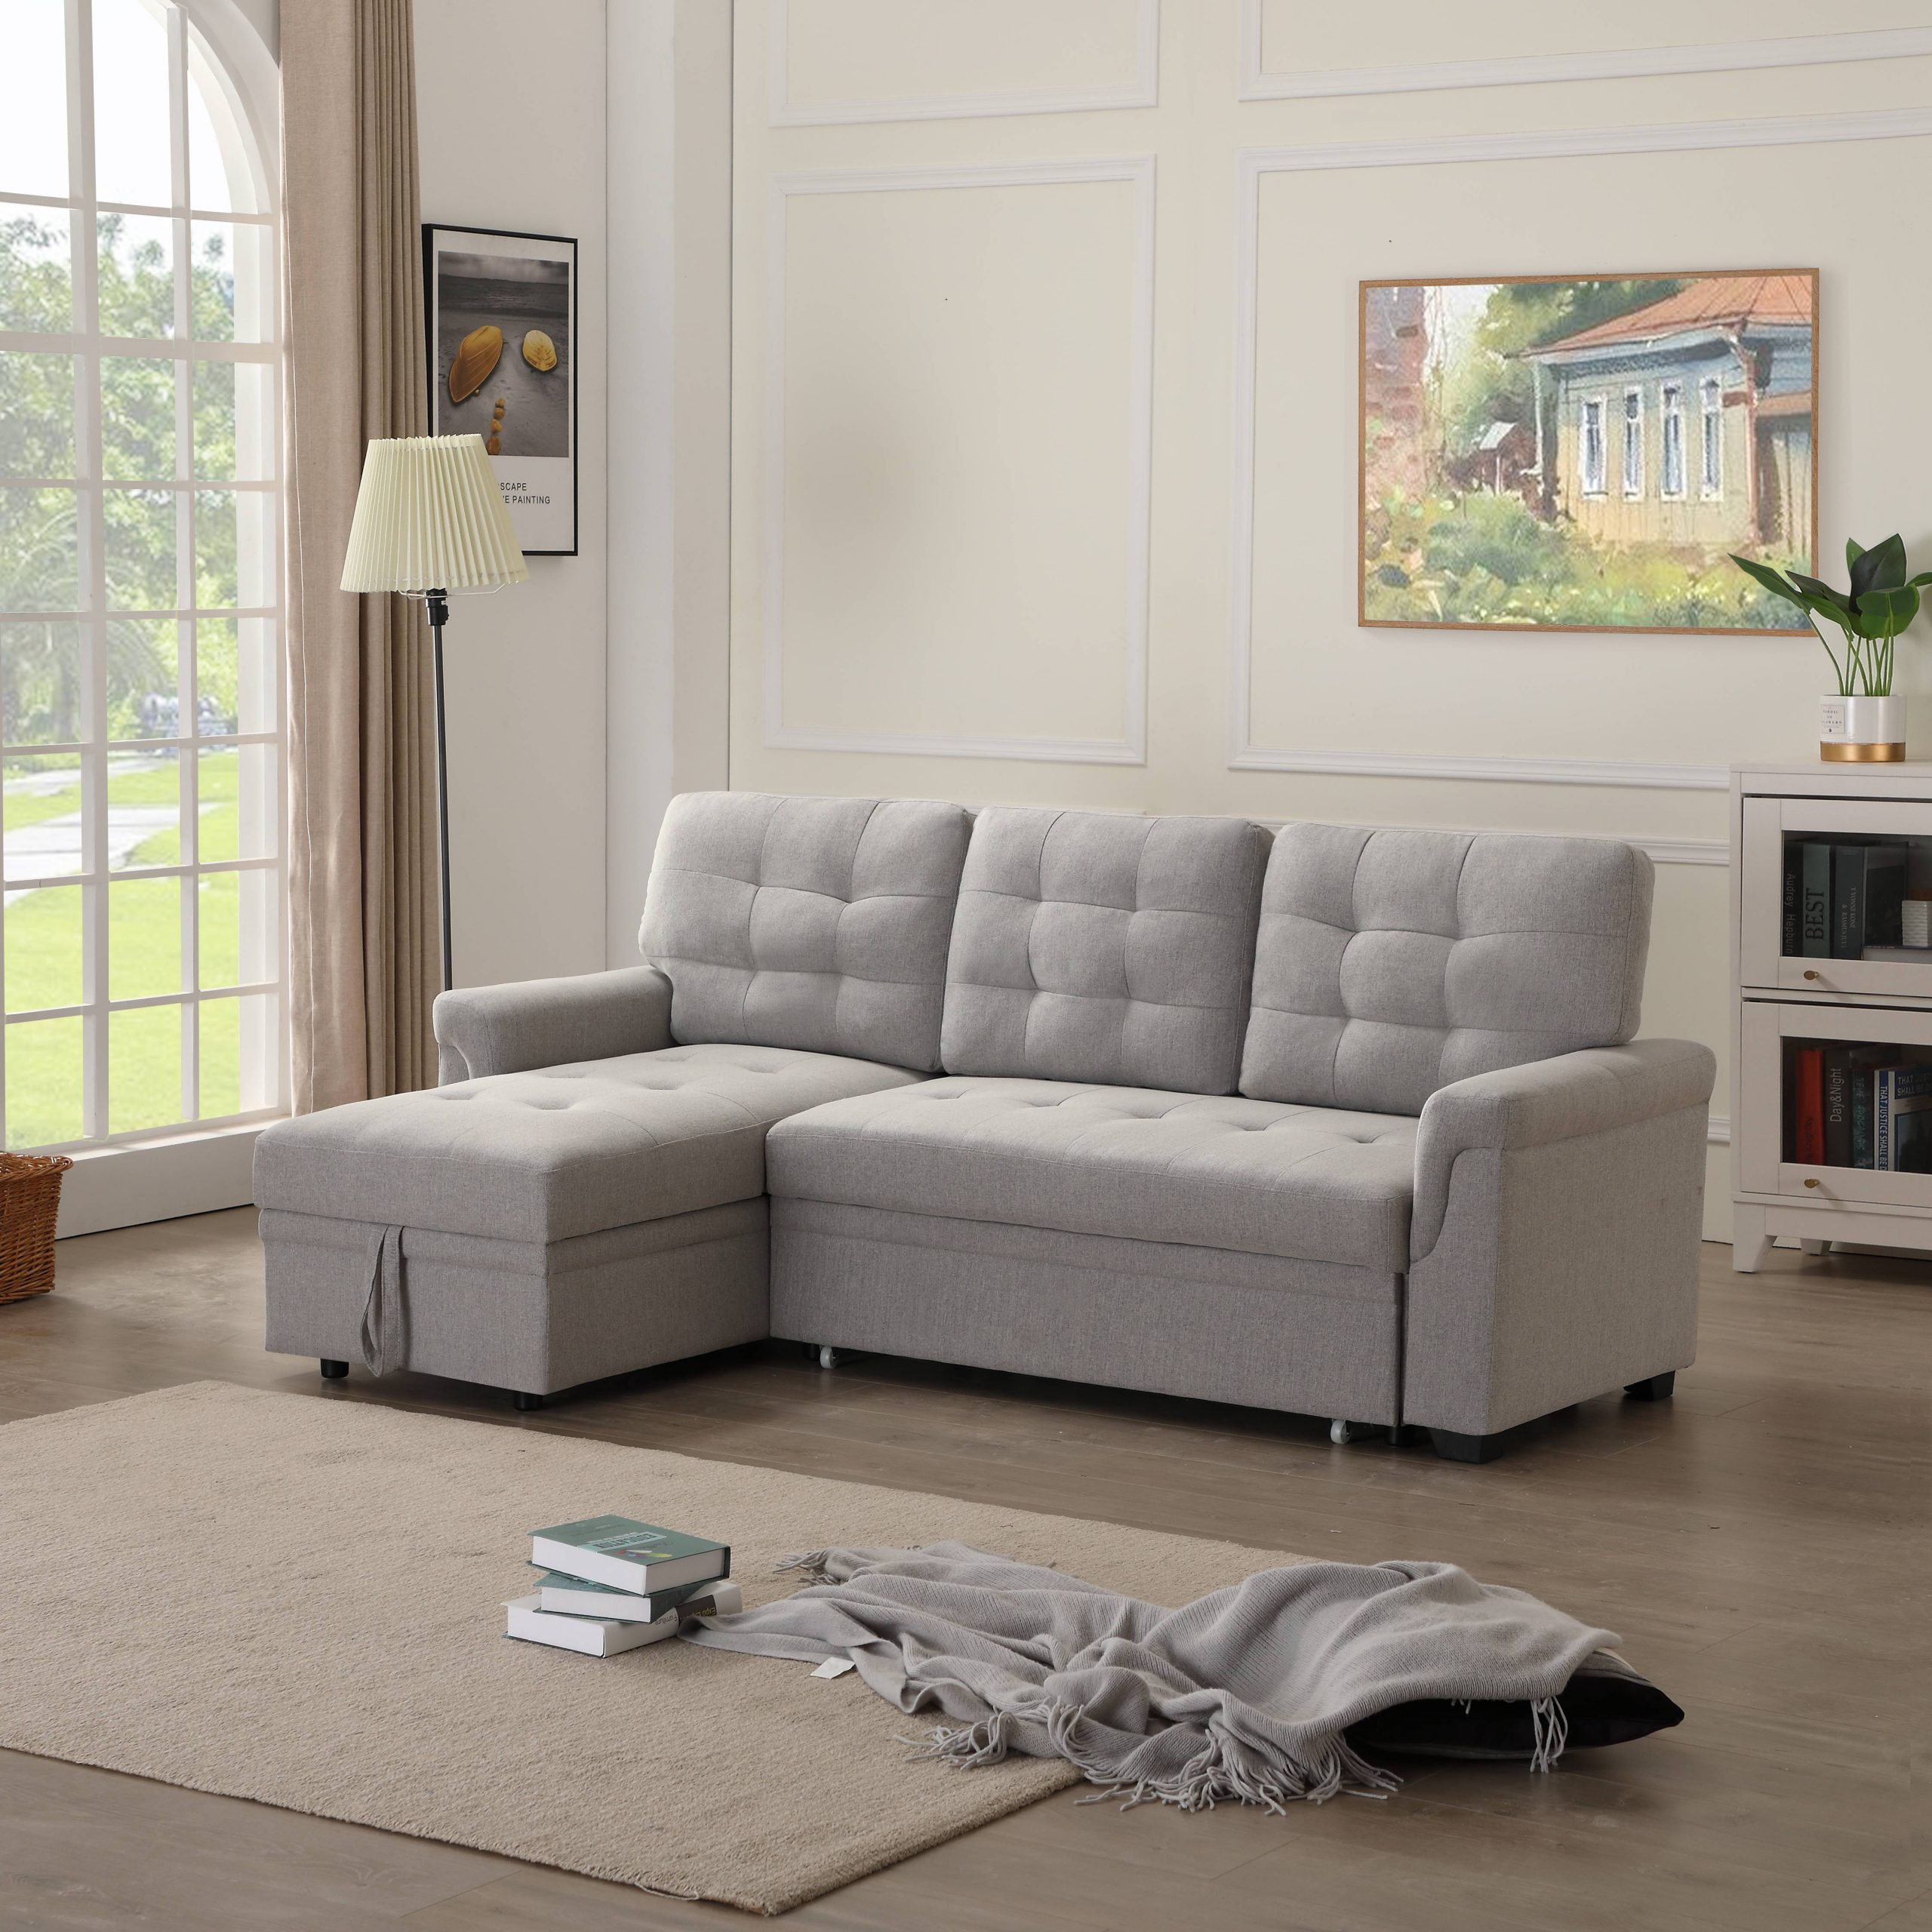 """86""""W Modern Sectional Sofa Bed With Reversible Chaise, L With Regard To Easton Small Space Sectional Futon Sofas (View 11 of 15)"""